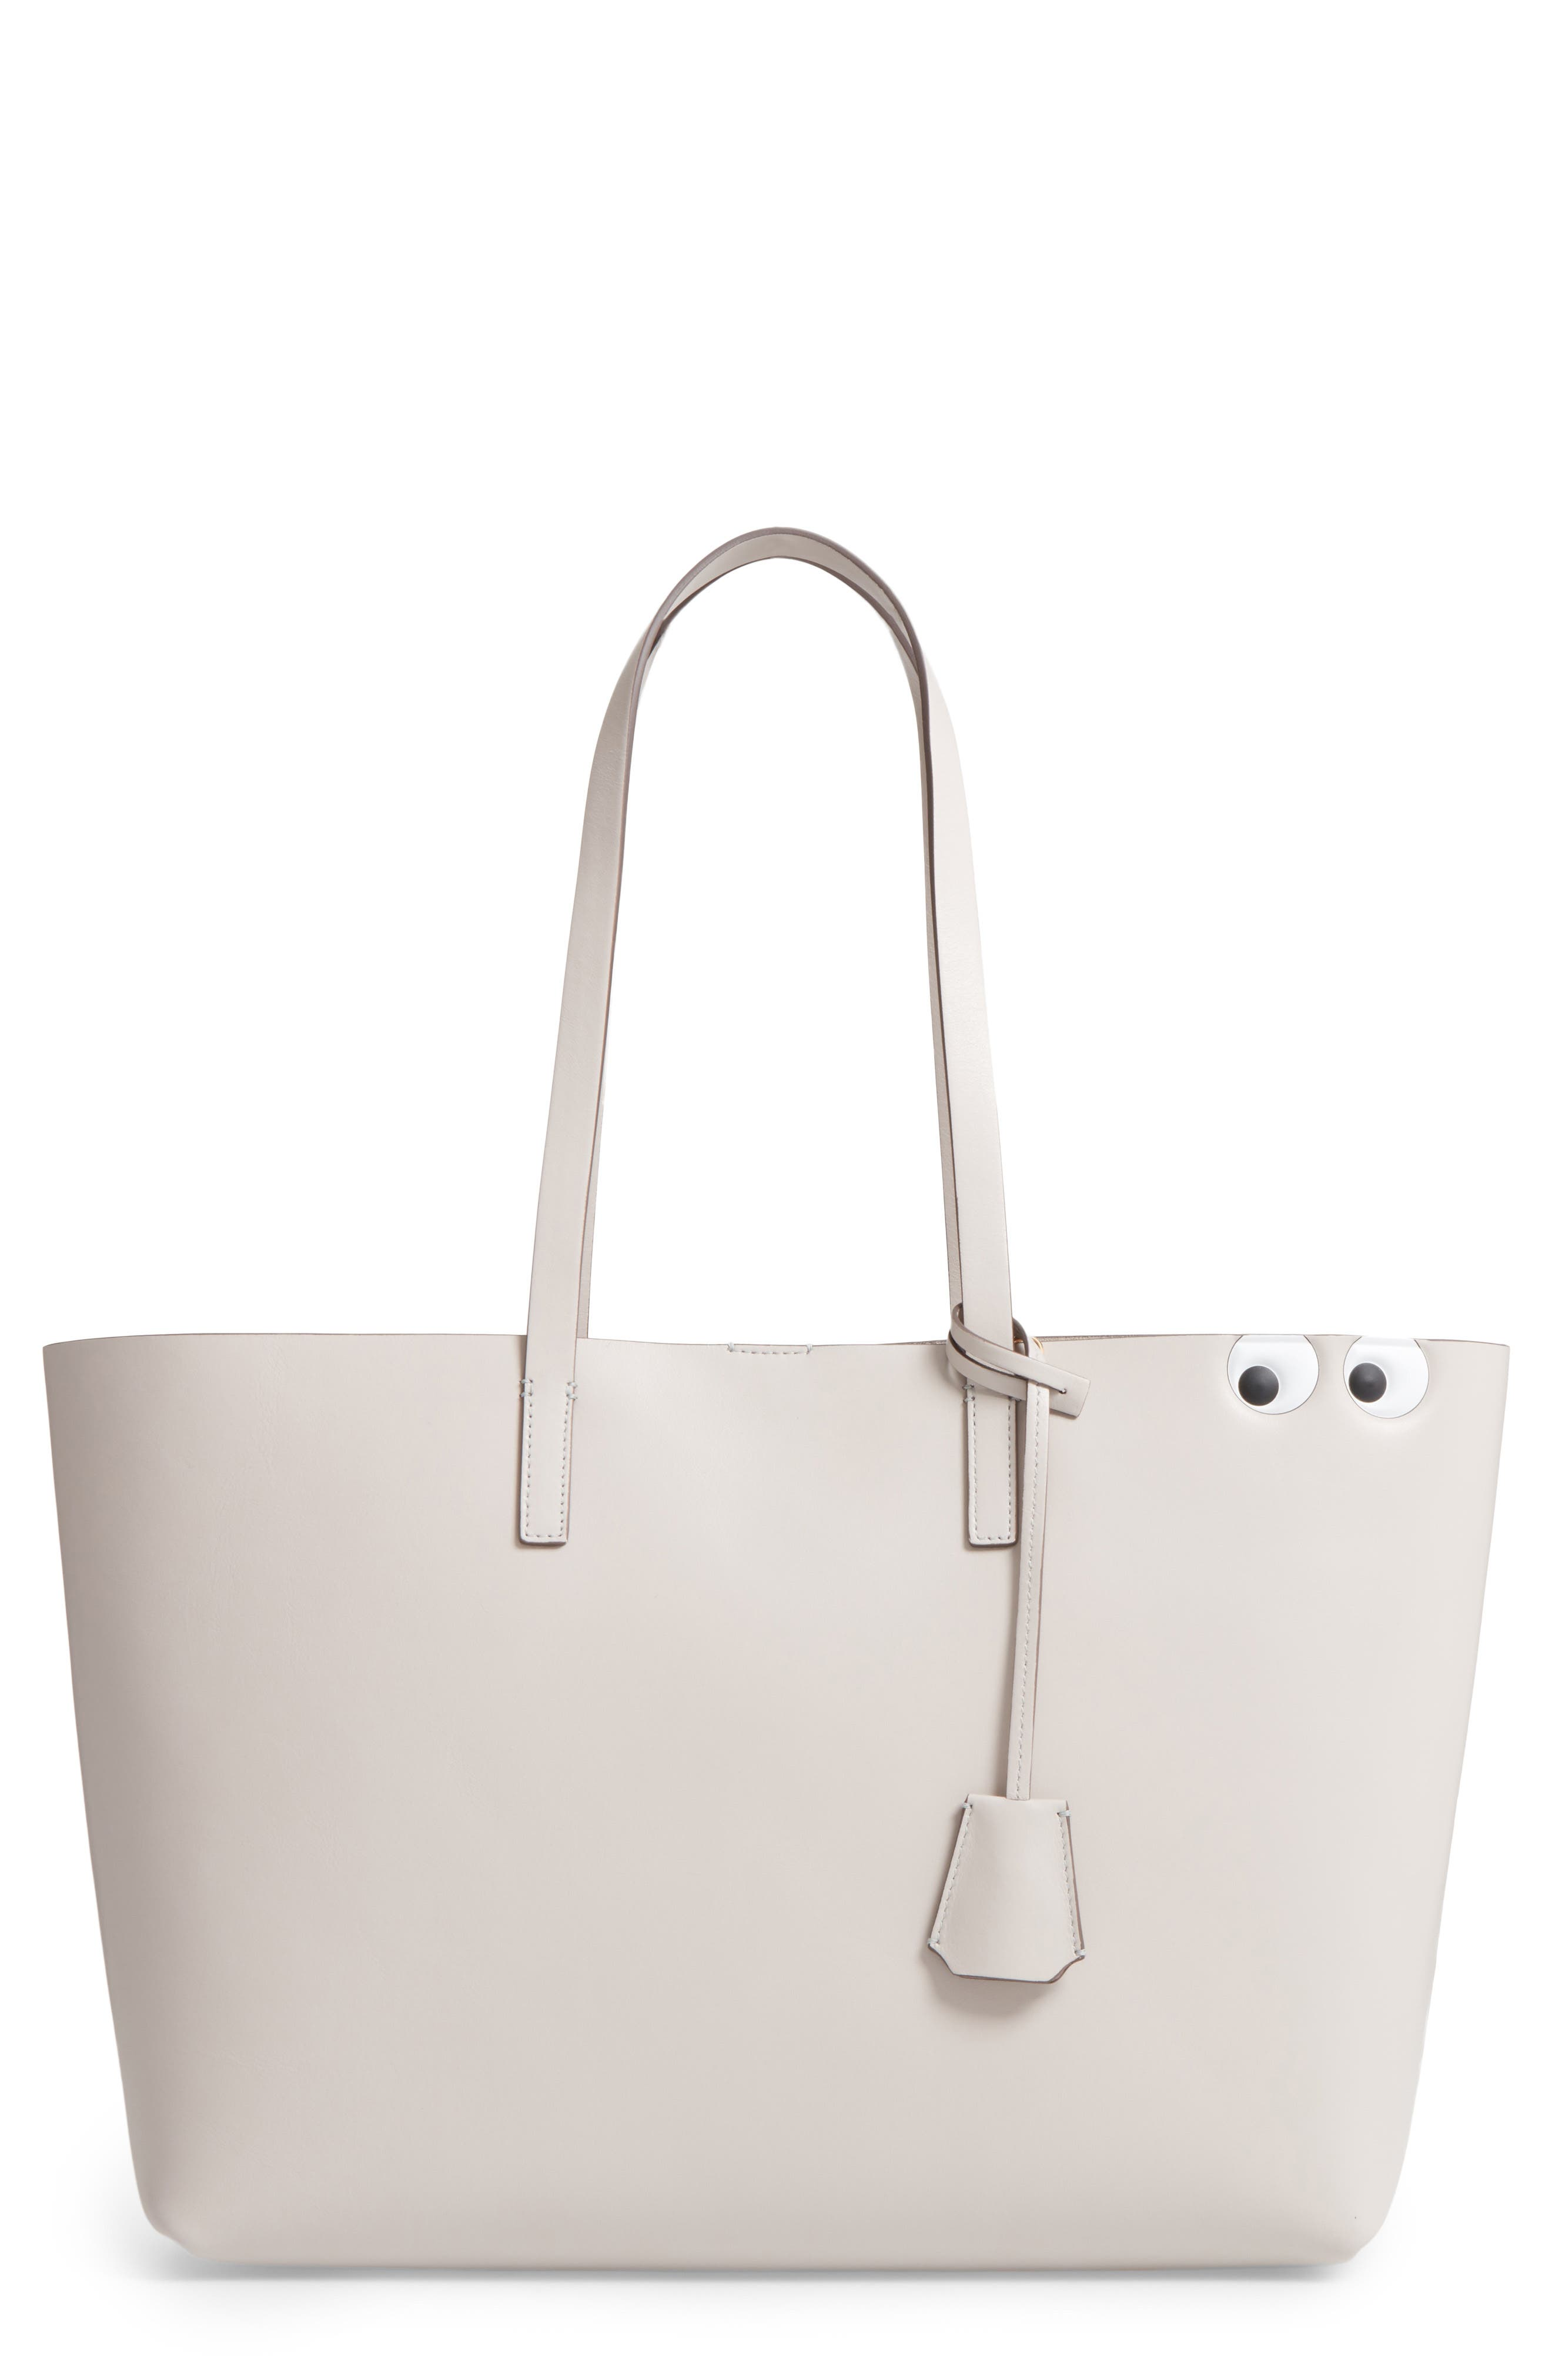 Ebury - Eyes Leather Tote,                             Main thumbnail 1, color,                             050